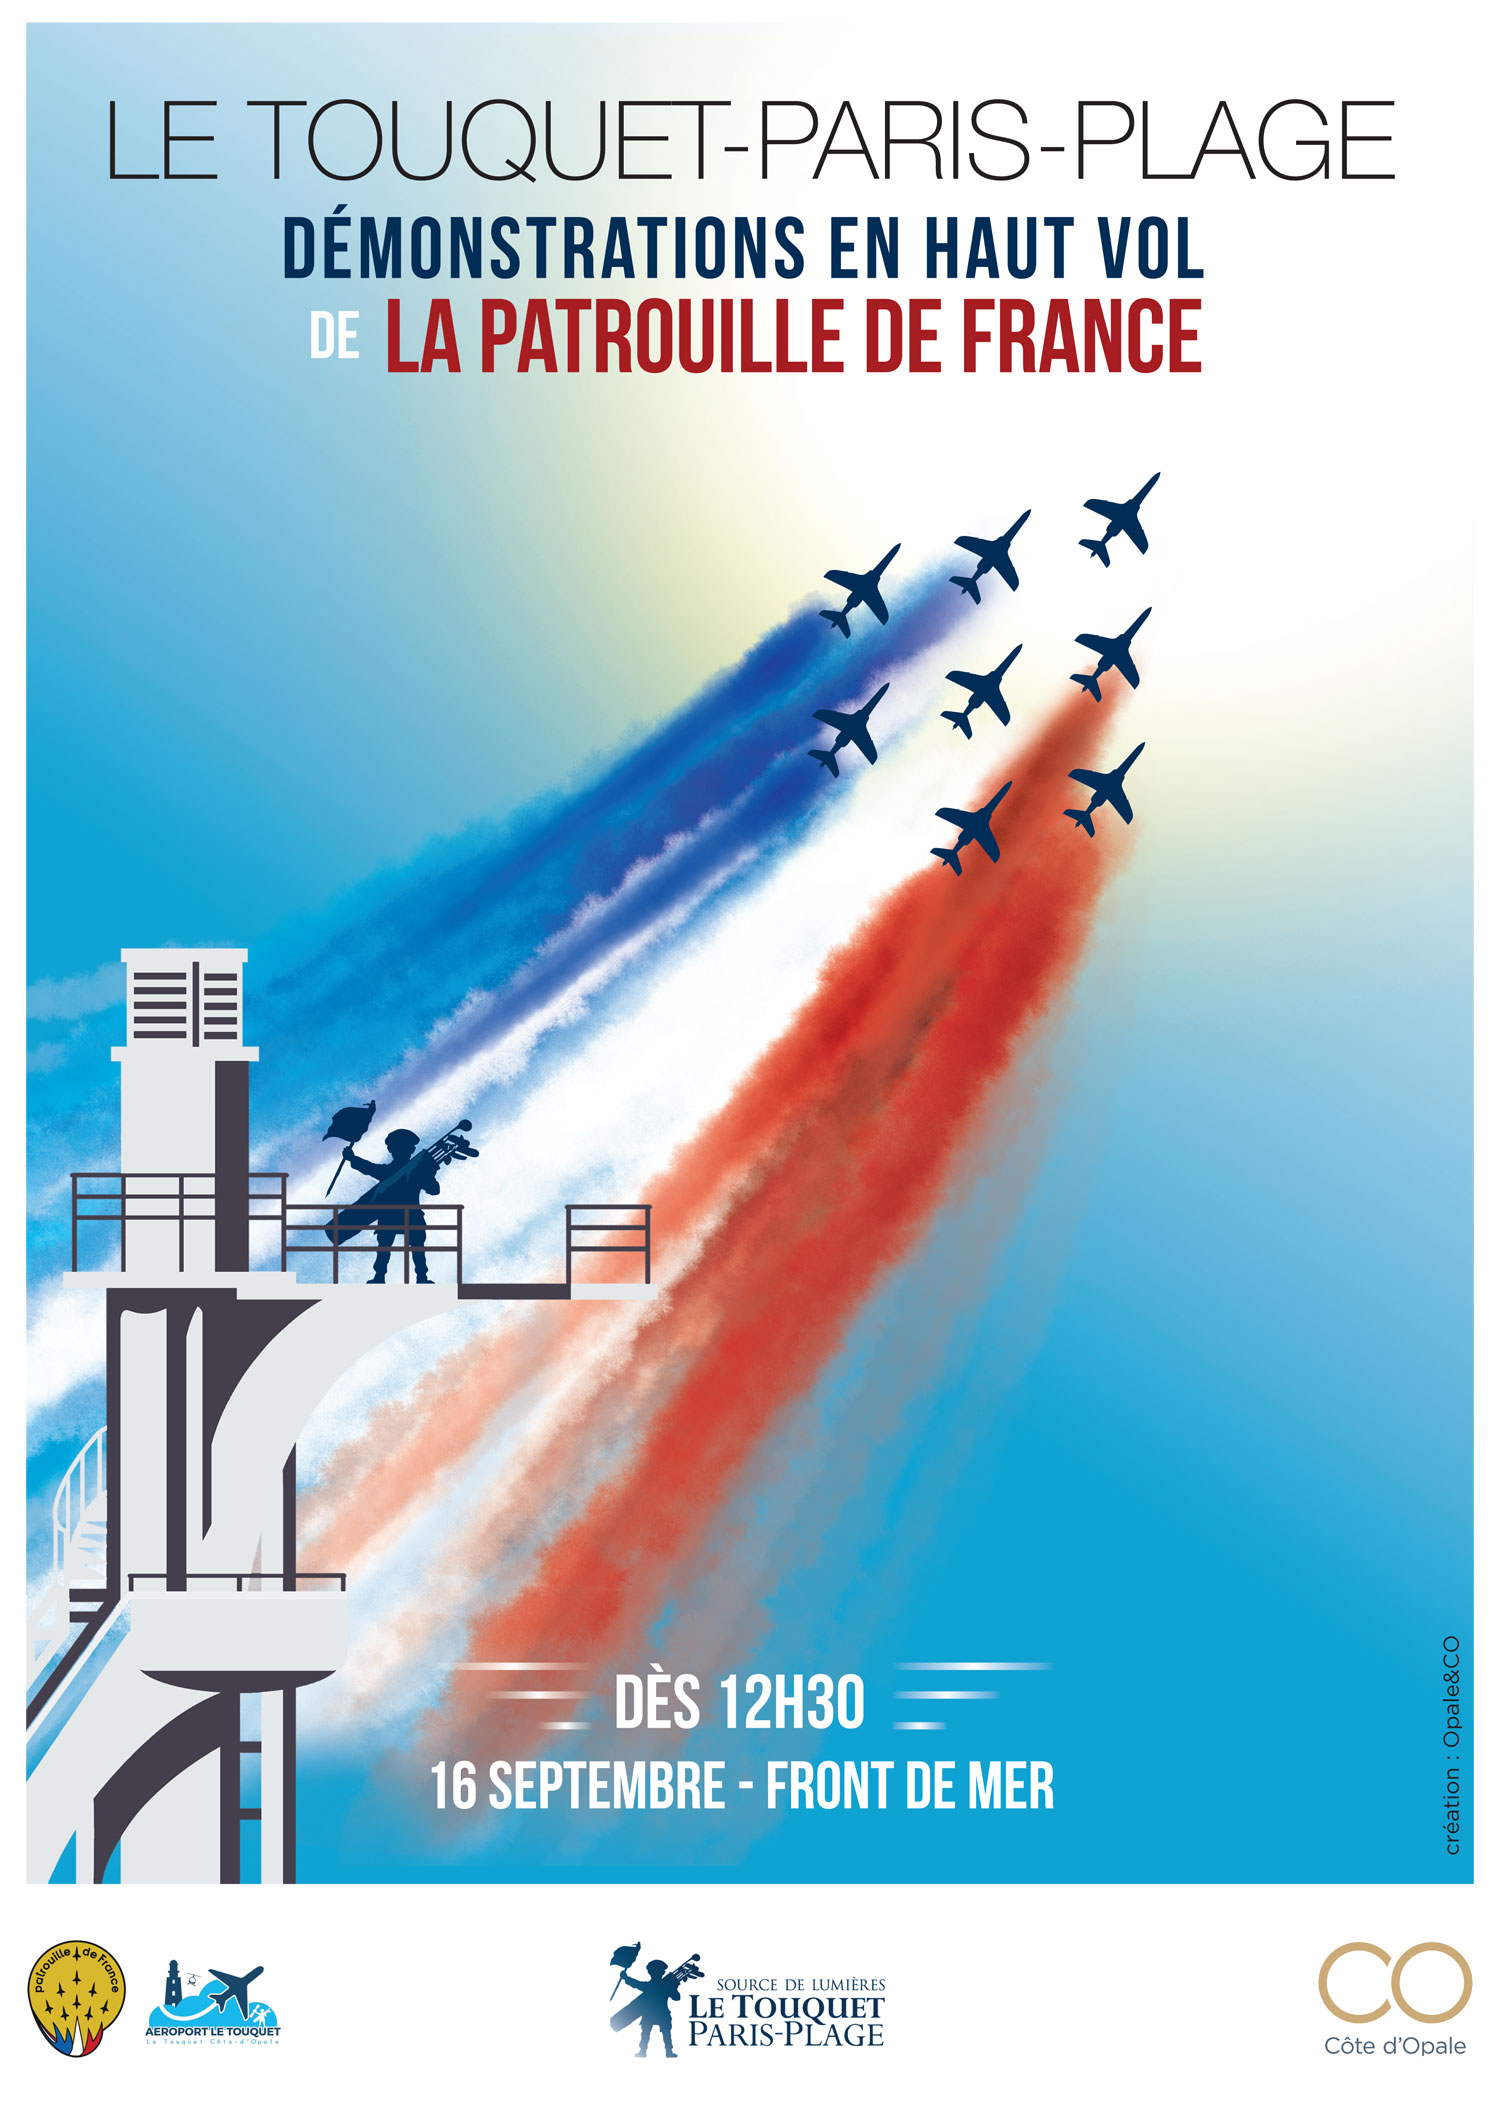 Meeting Aerien Touquet plage 2018 , Patrouille de France, meeting Aerien 2018